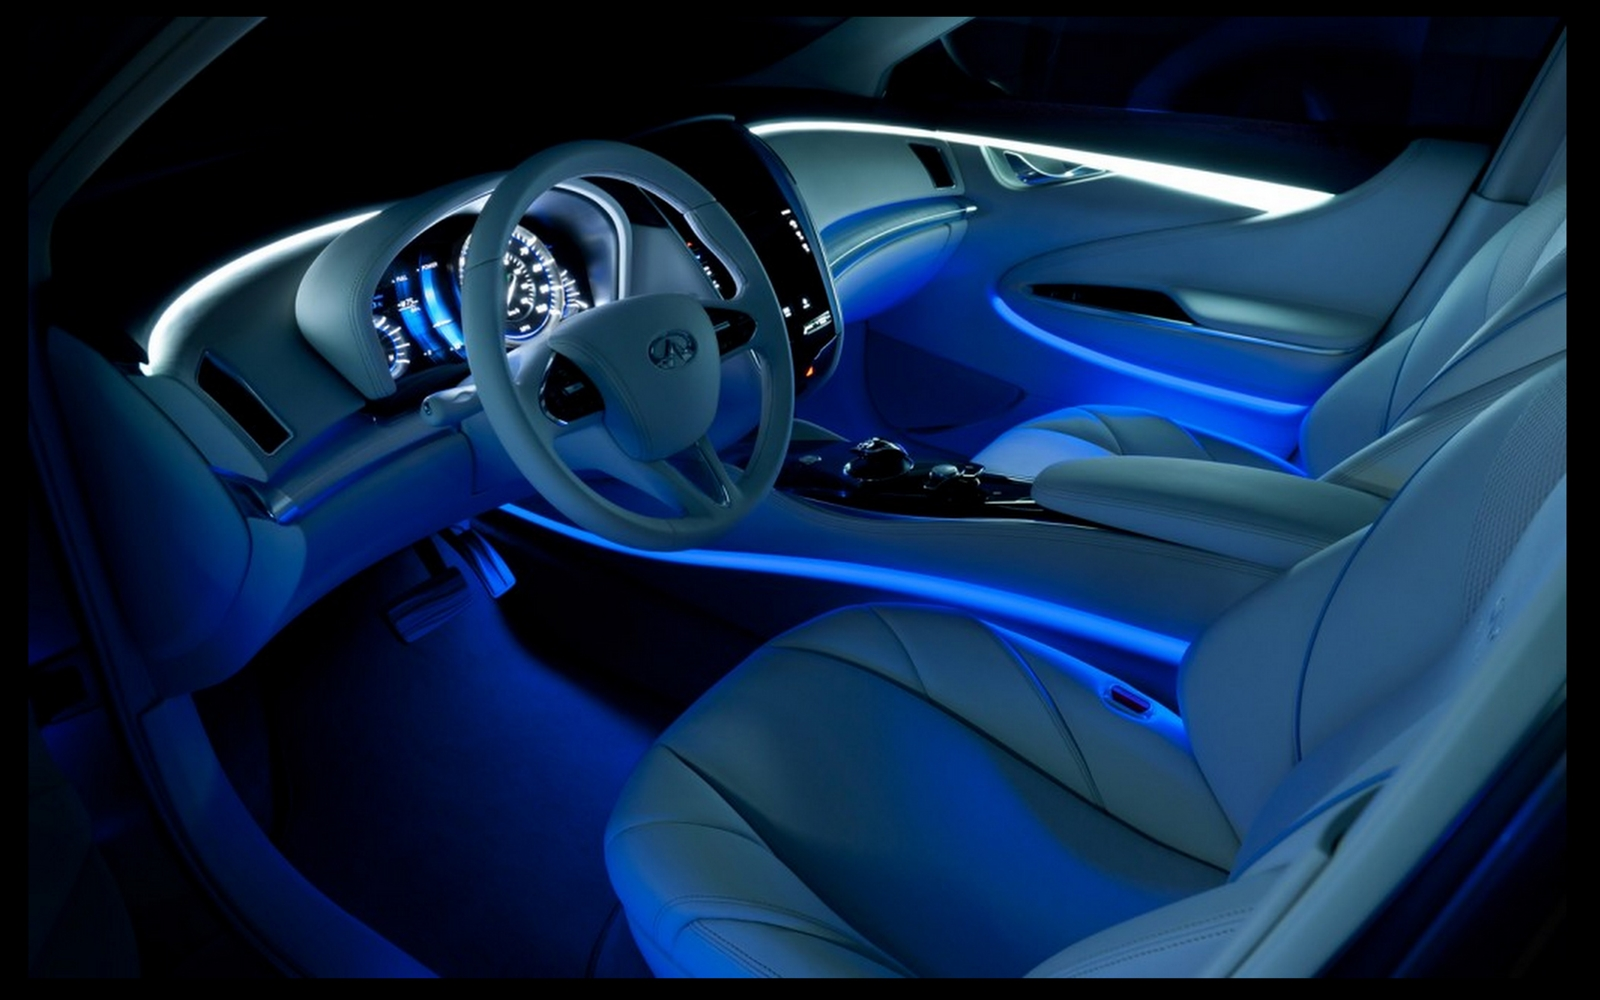 W Info Autos Innovative Interior Lighting Creates Style